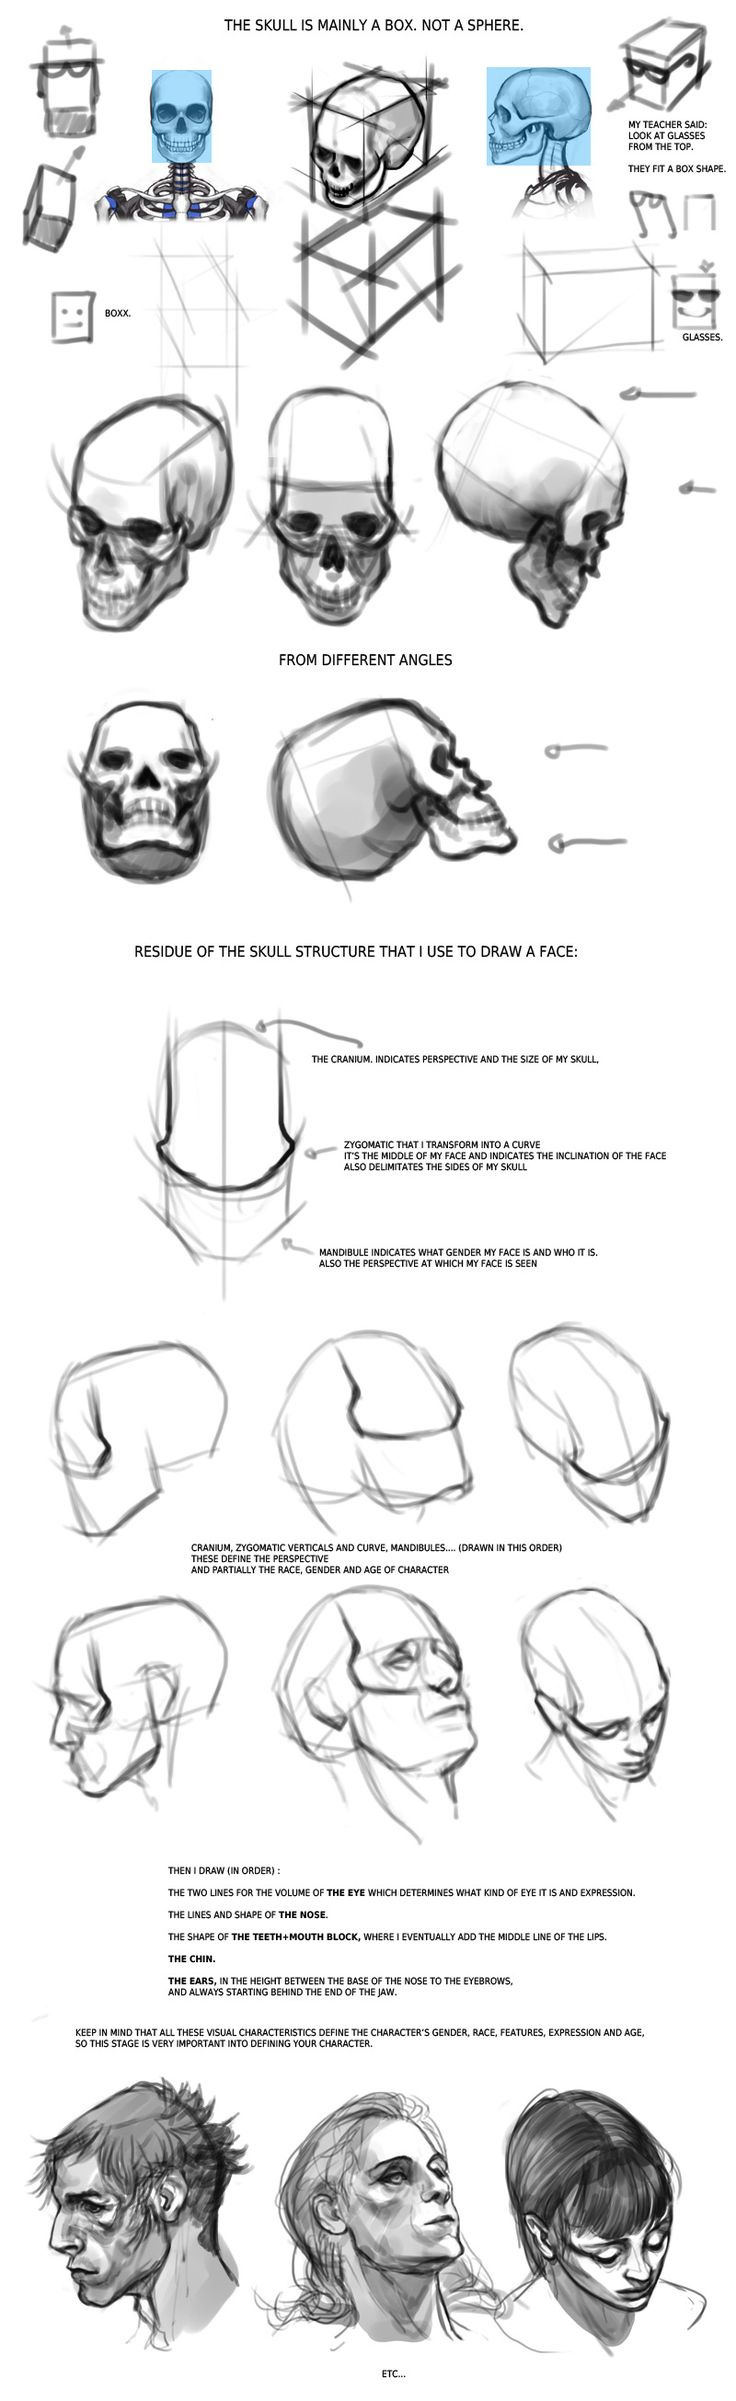 facial anatomy tips ✤ || CHARACTER DESIGN REFERENCES | Find more at https://www.facebook.com/CharacterDesignReferences if you're looking for: #line #art #character #design #model #sheet #illustration #expressions #best #concept #animation #drawing #archive #library #reference #anatomy #traditional #draw #development #artist #pose #settei #gestures #how #to #tutorial #conceptart #modelsheet #cartoon